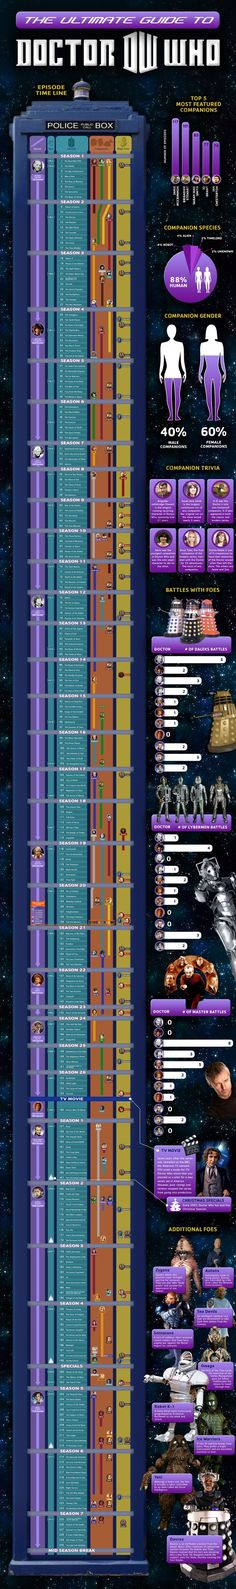 Love Dr. Who? Like to know more about all the doctors, companions, foes, and battles for each show? Then you're in the right place as this infographic from comcastpromo.com is an ultimate guide to all things Dr. Who. Doctor Who is a British sci-fi television program created by the BBC. The program portrays the adventures of a Time Lord-- a time traveling, humanoid alien known as the Doctor. He probes the universe in his 'TARDIS', a sentient time-traveling space ship. Its outside l...